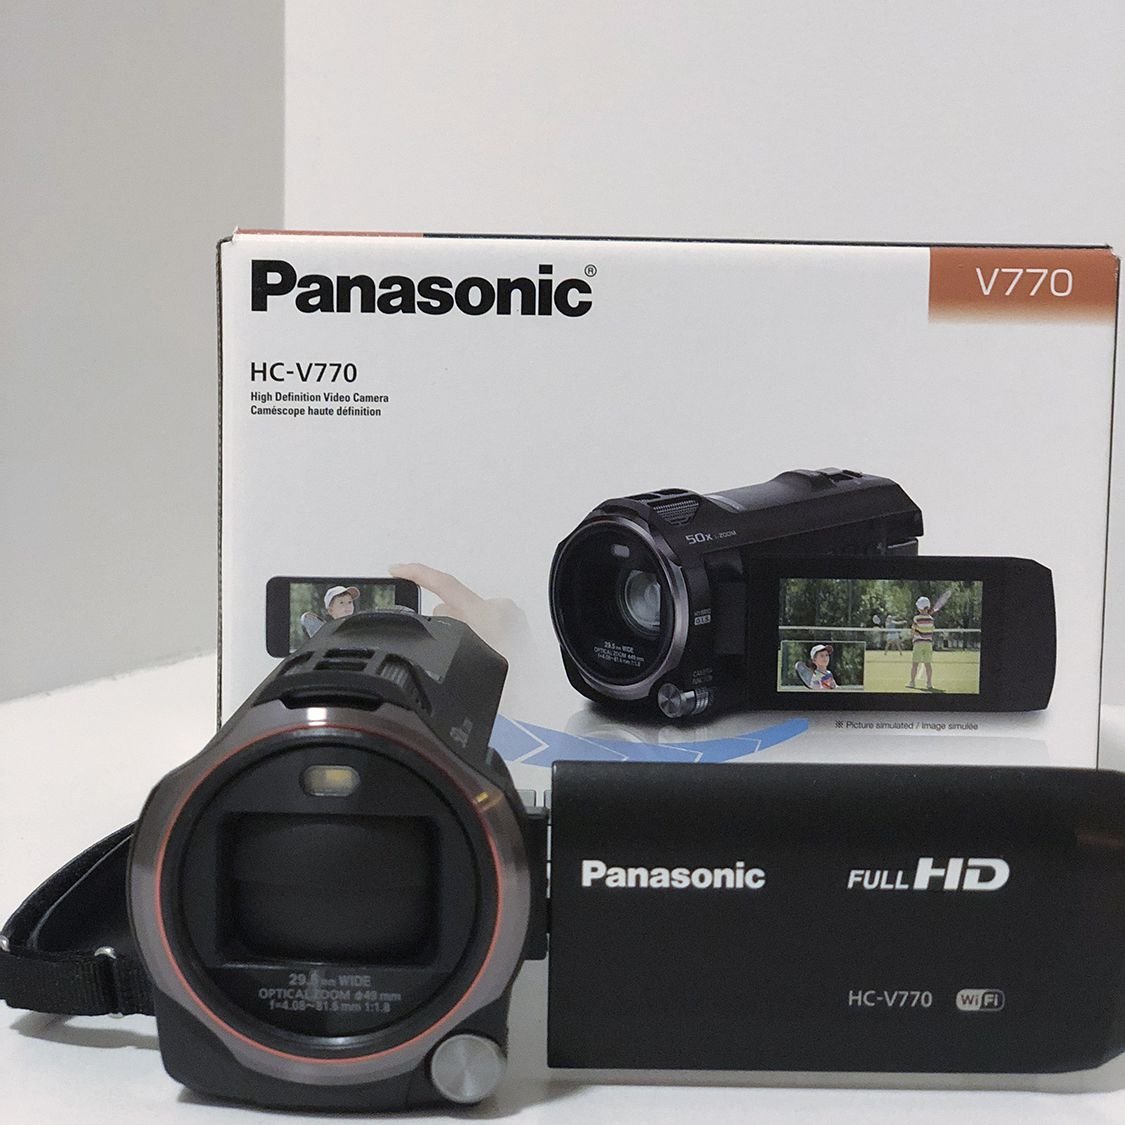 Lifewire testers thought the Panasonic HC-V770 HD Camcorder was a solid  purchase for anyone looking for a reliable video camera.